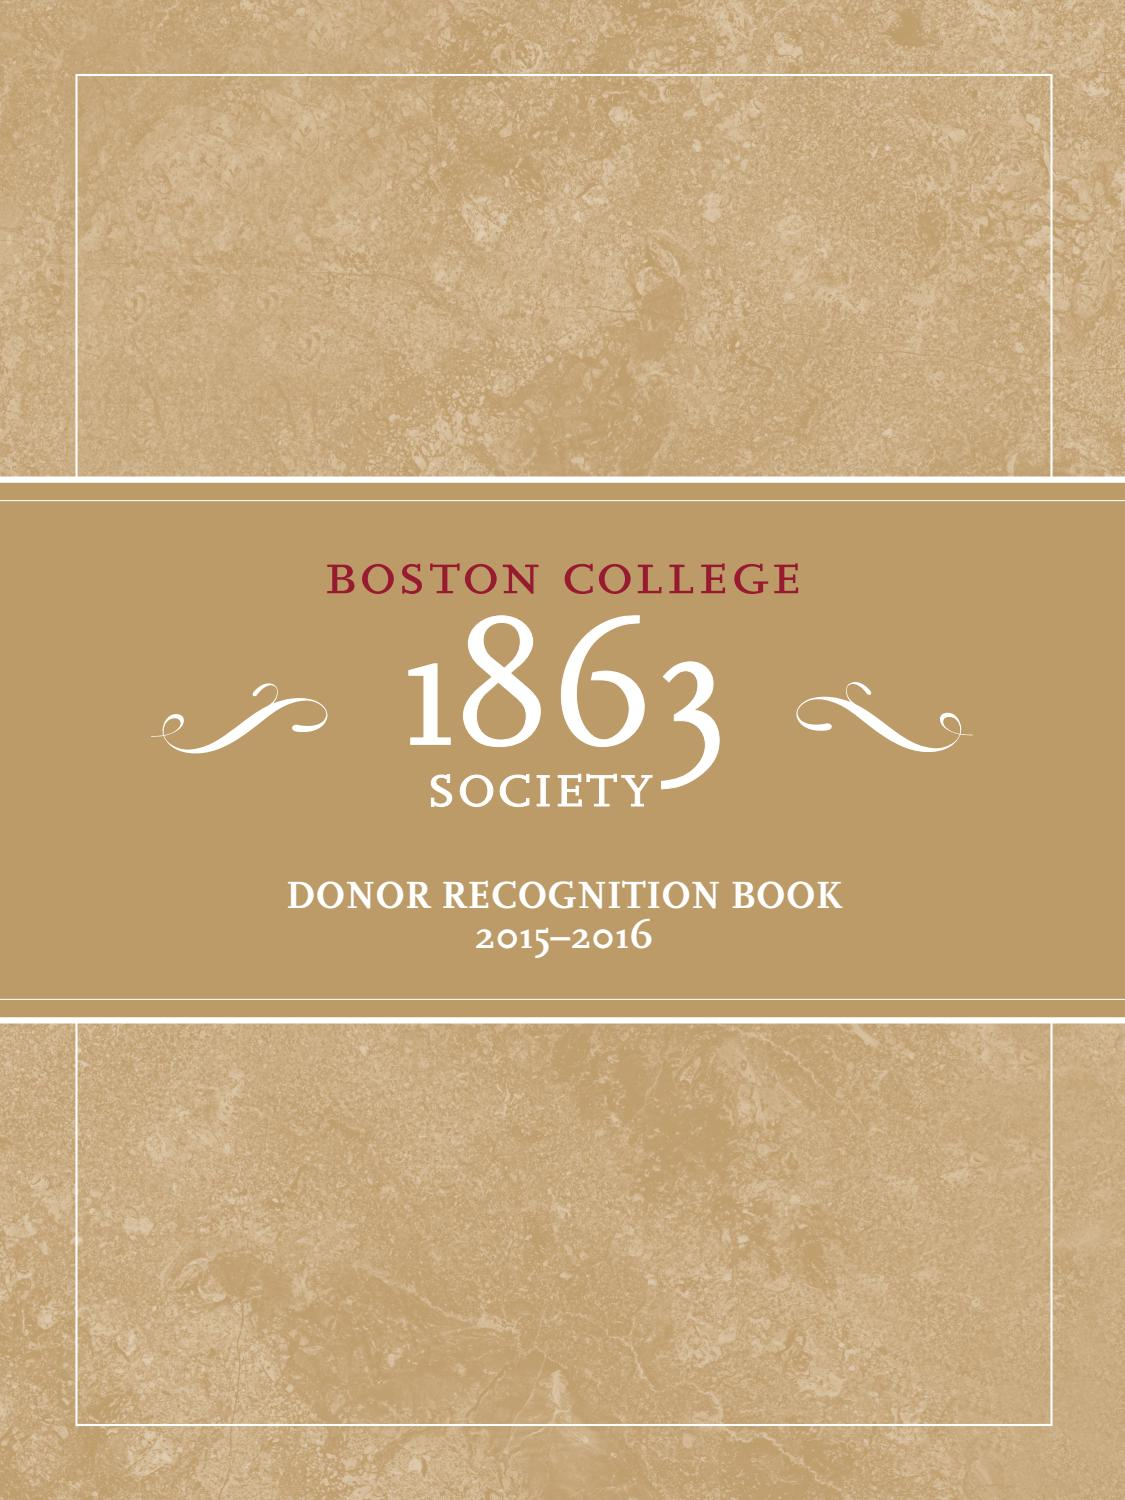 1863 Society Donor Recognition Book by Boston College - issuu